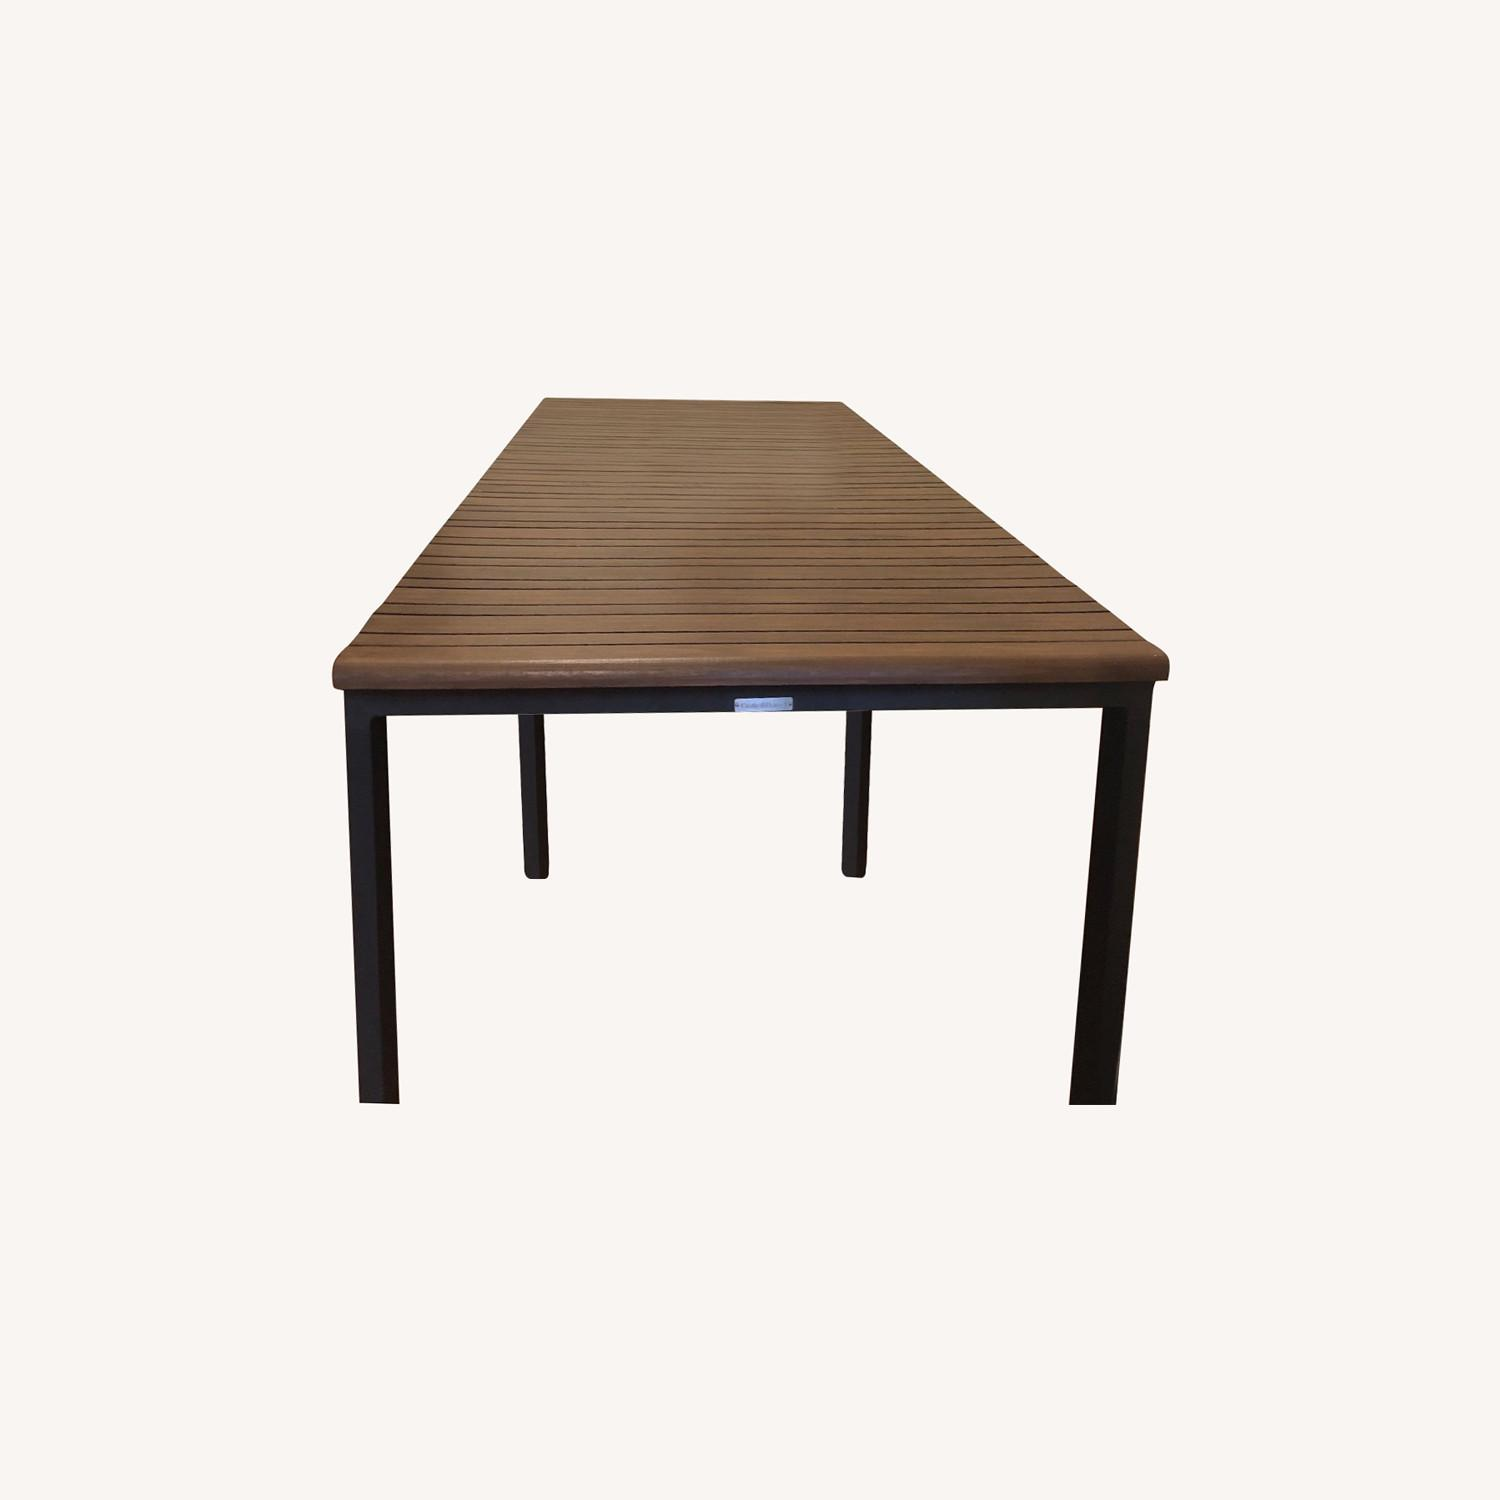 Crate & Barrel Outdoor Rocha Dining Table - image-8